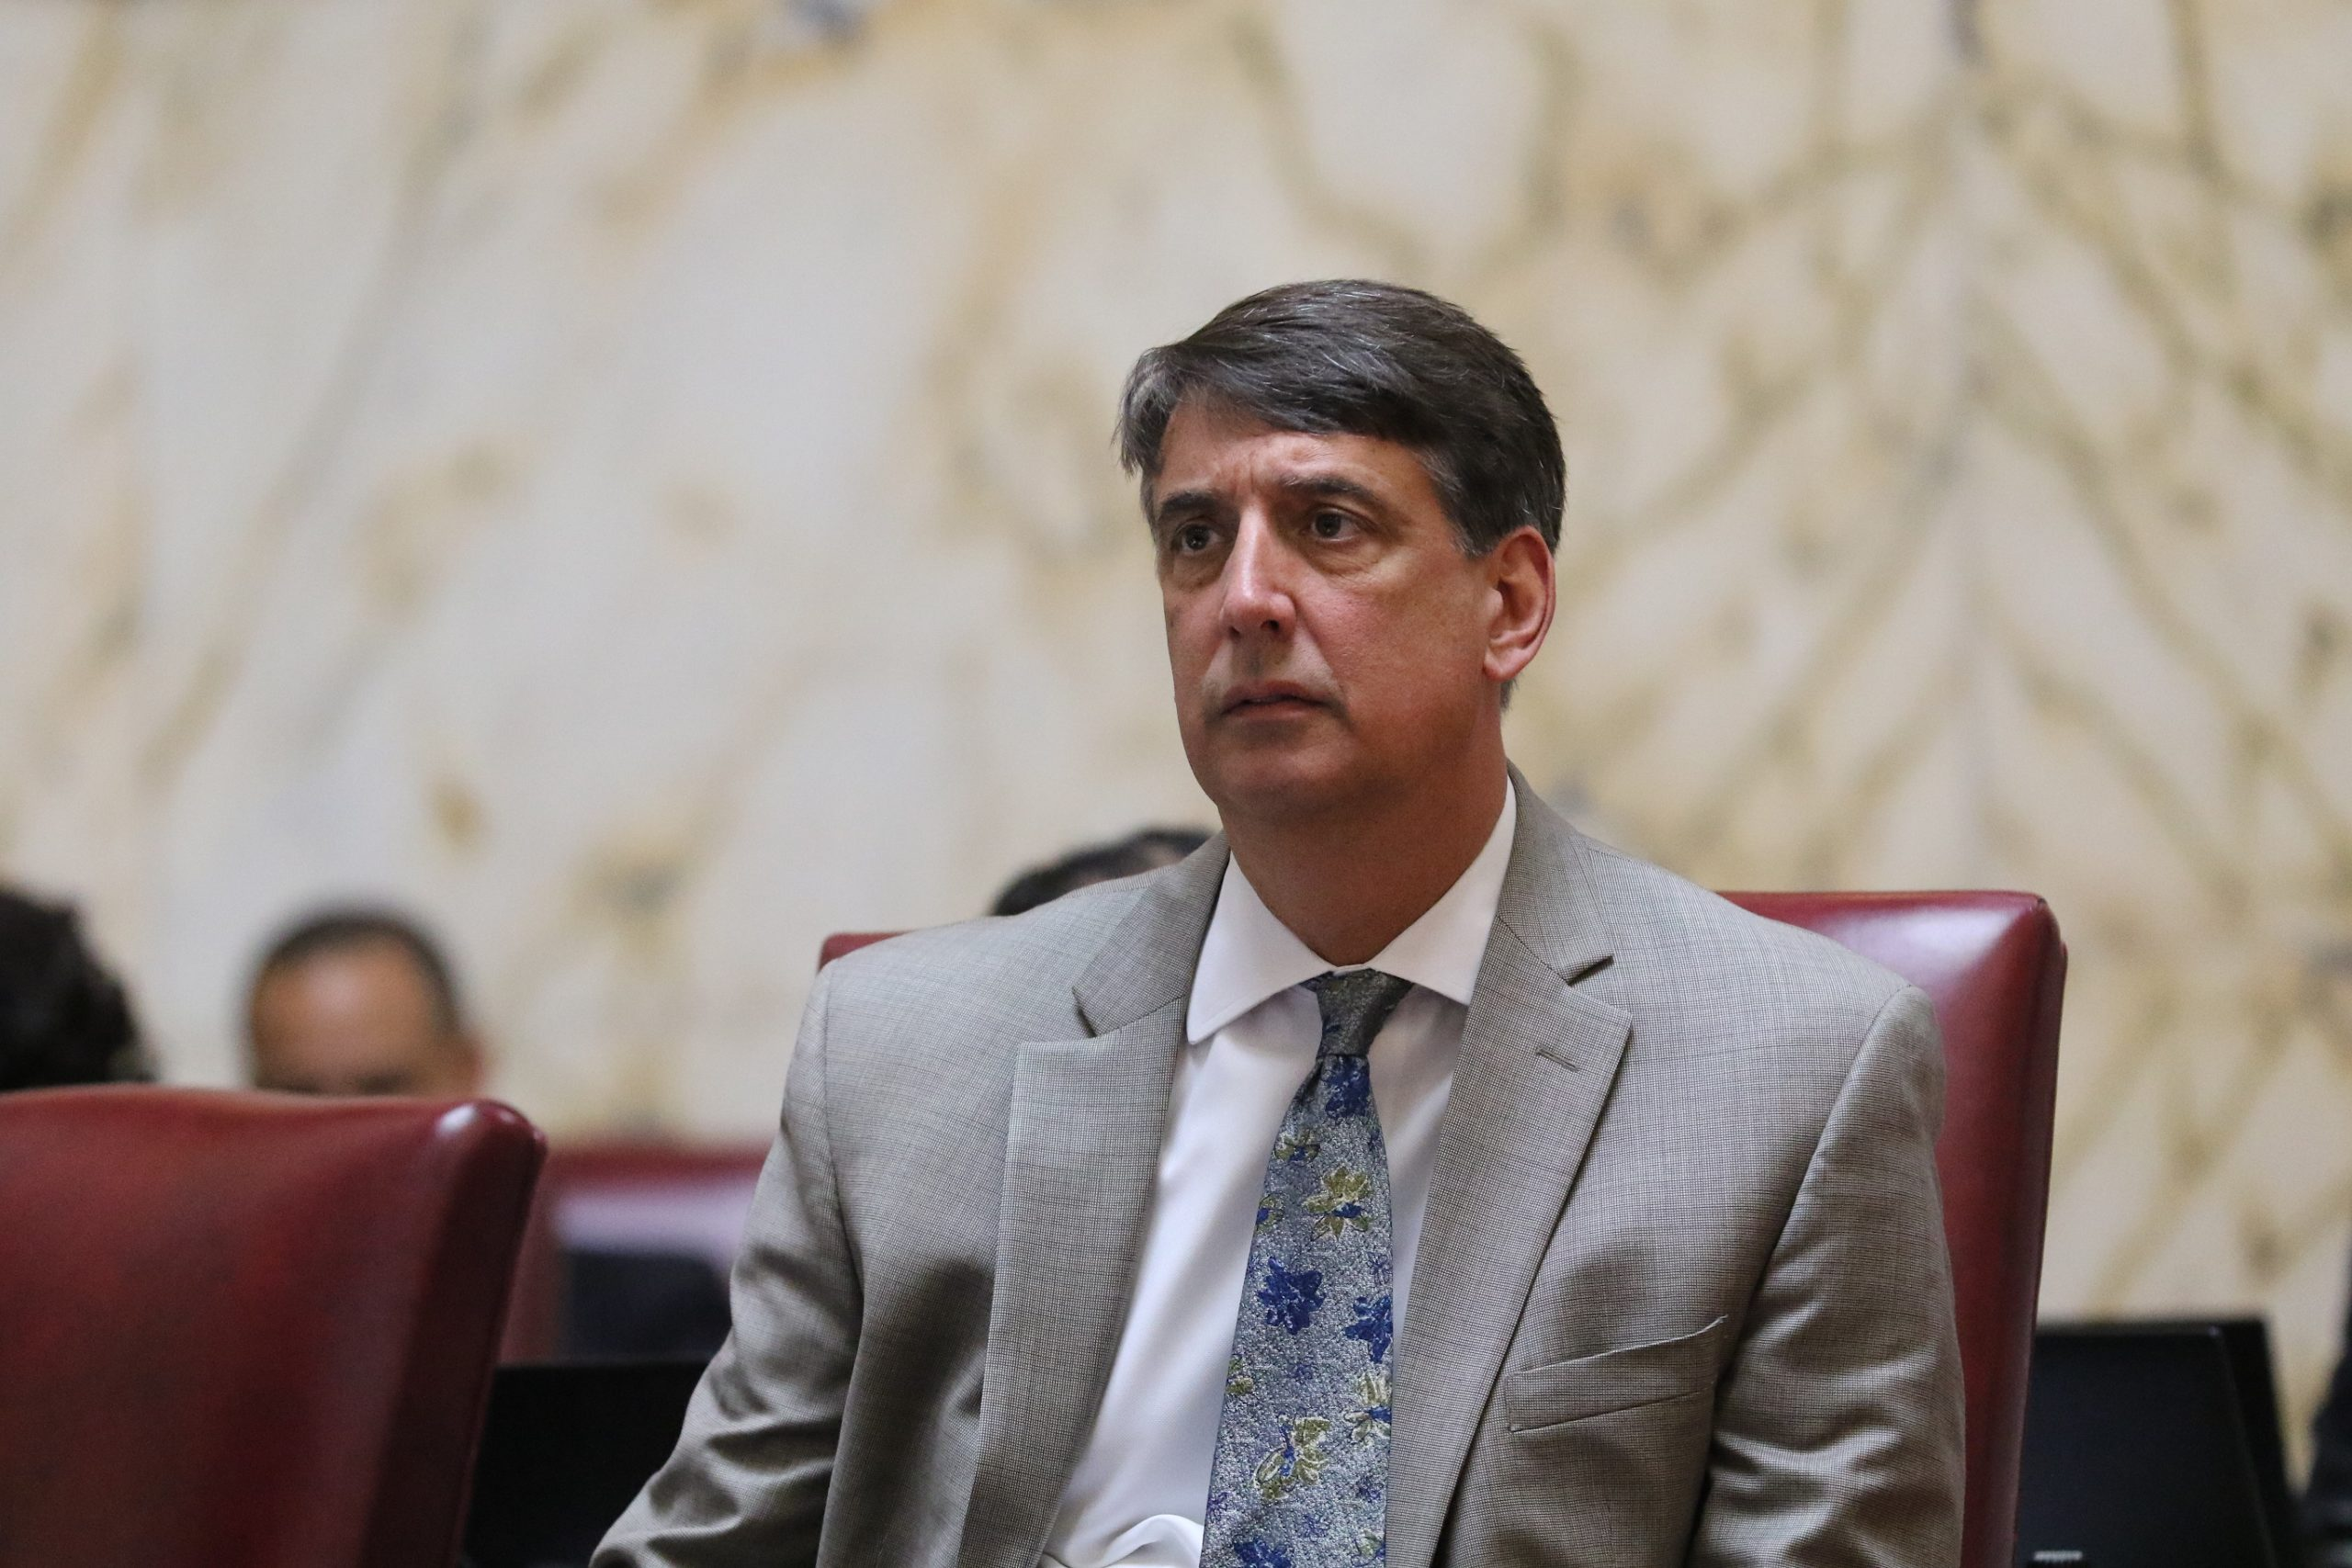 New Senate budget chair Guzzone forecasts a phase-in for school reforms, spending